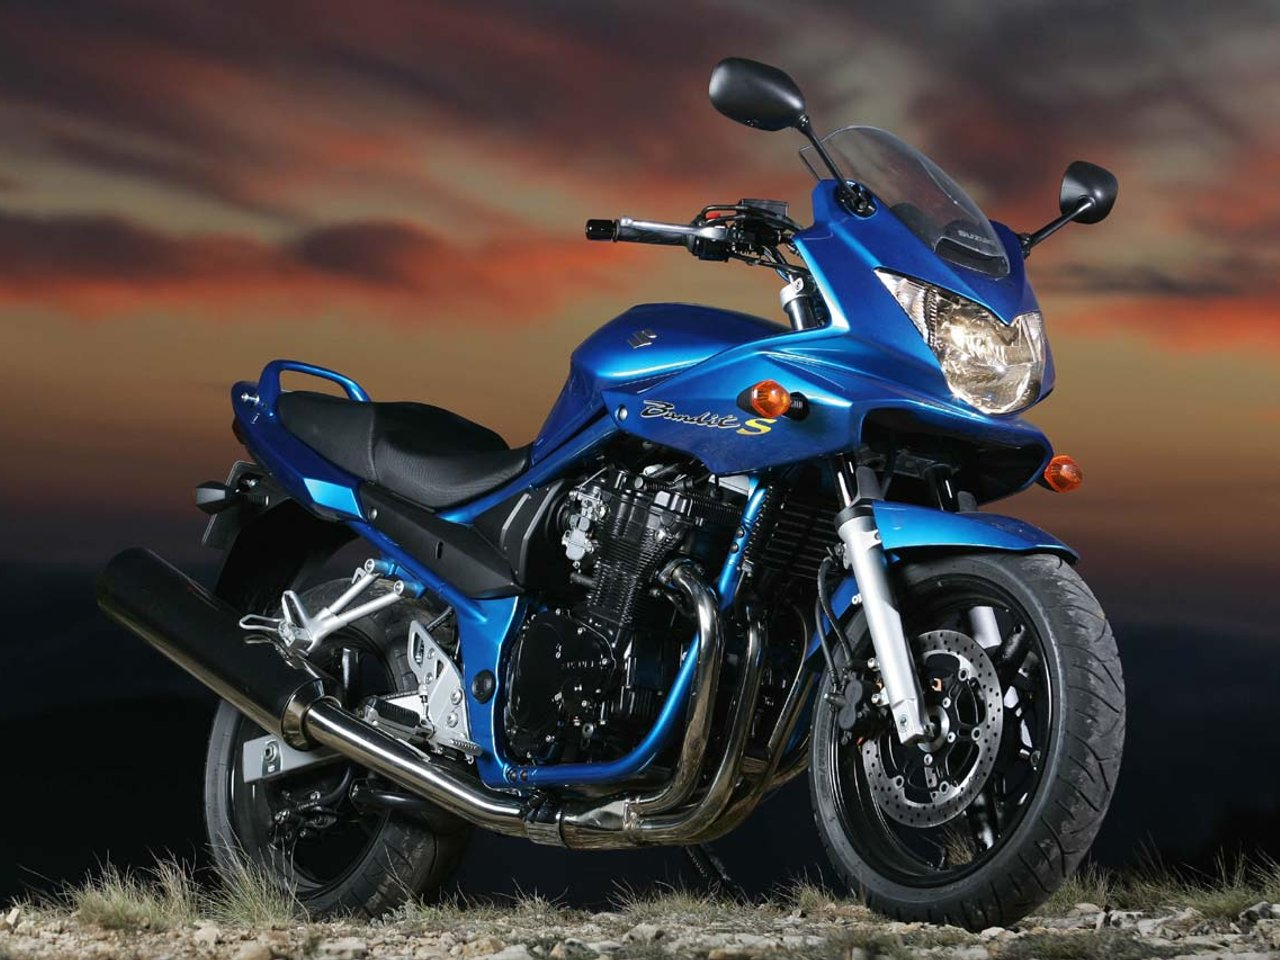 Motorcycle Desktop Backgrounds Images Pictures Wallpapers Photos Funny 1280x960